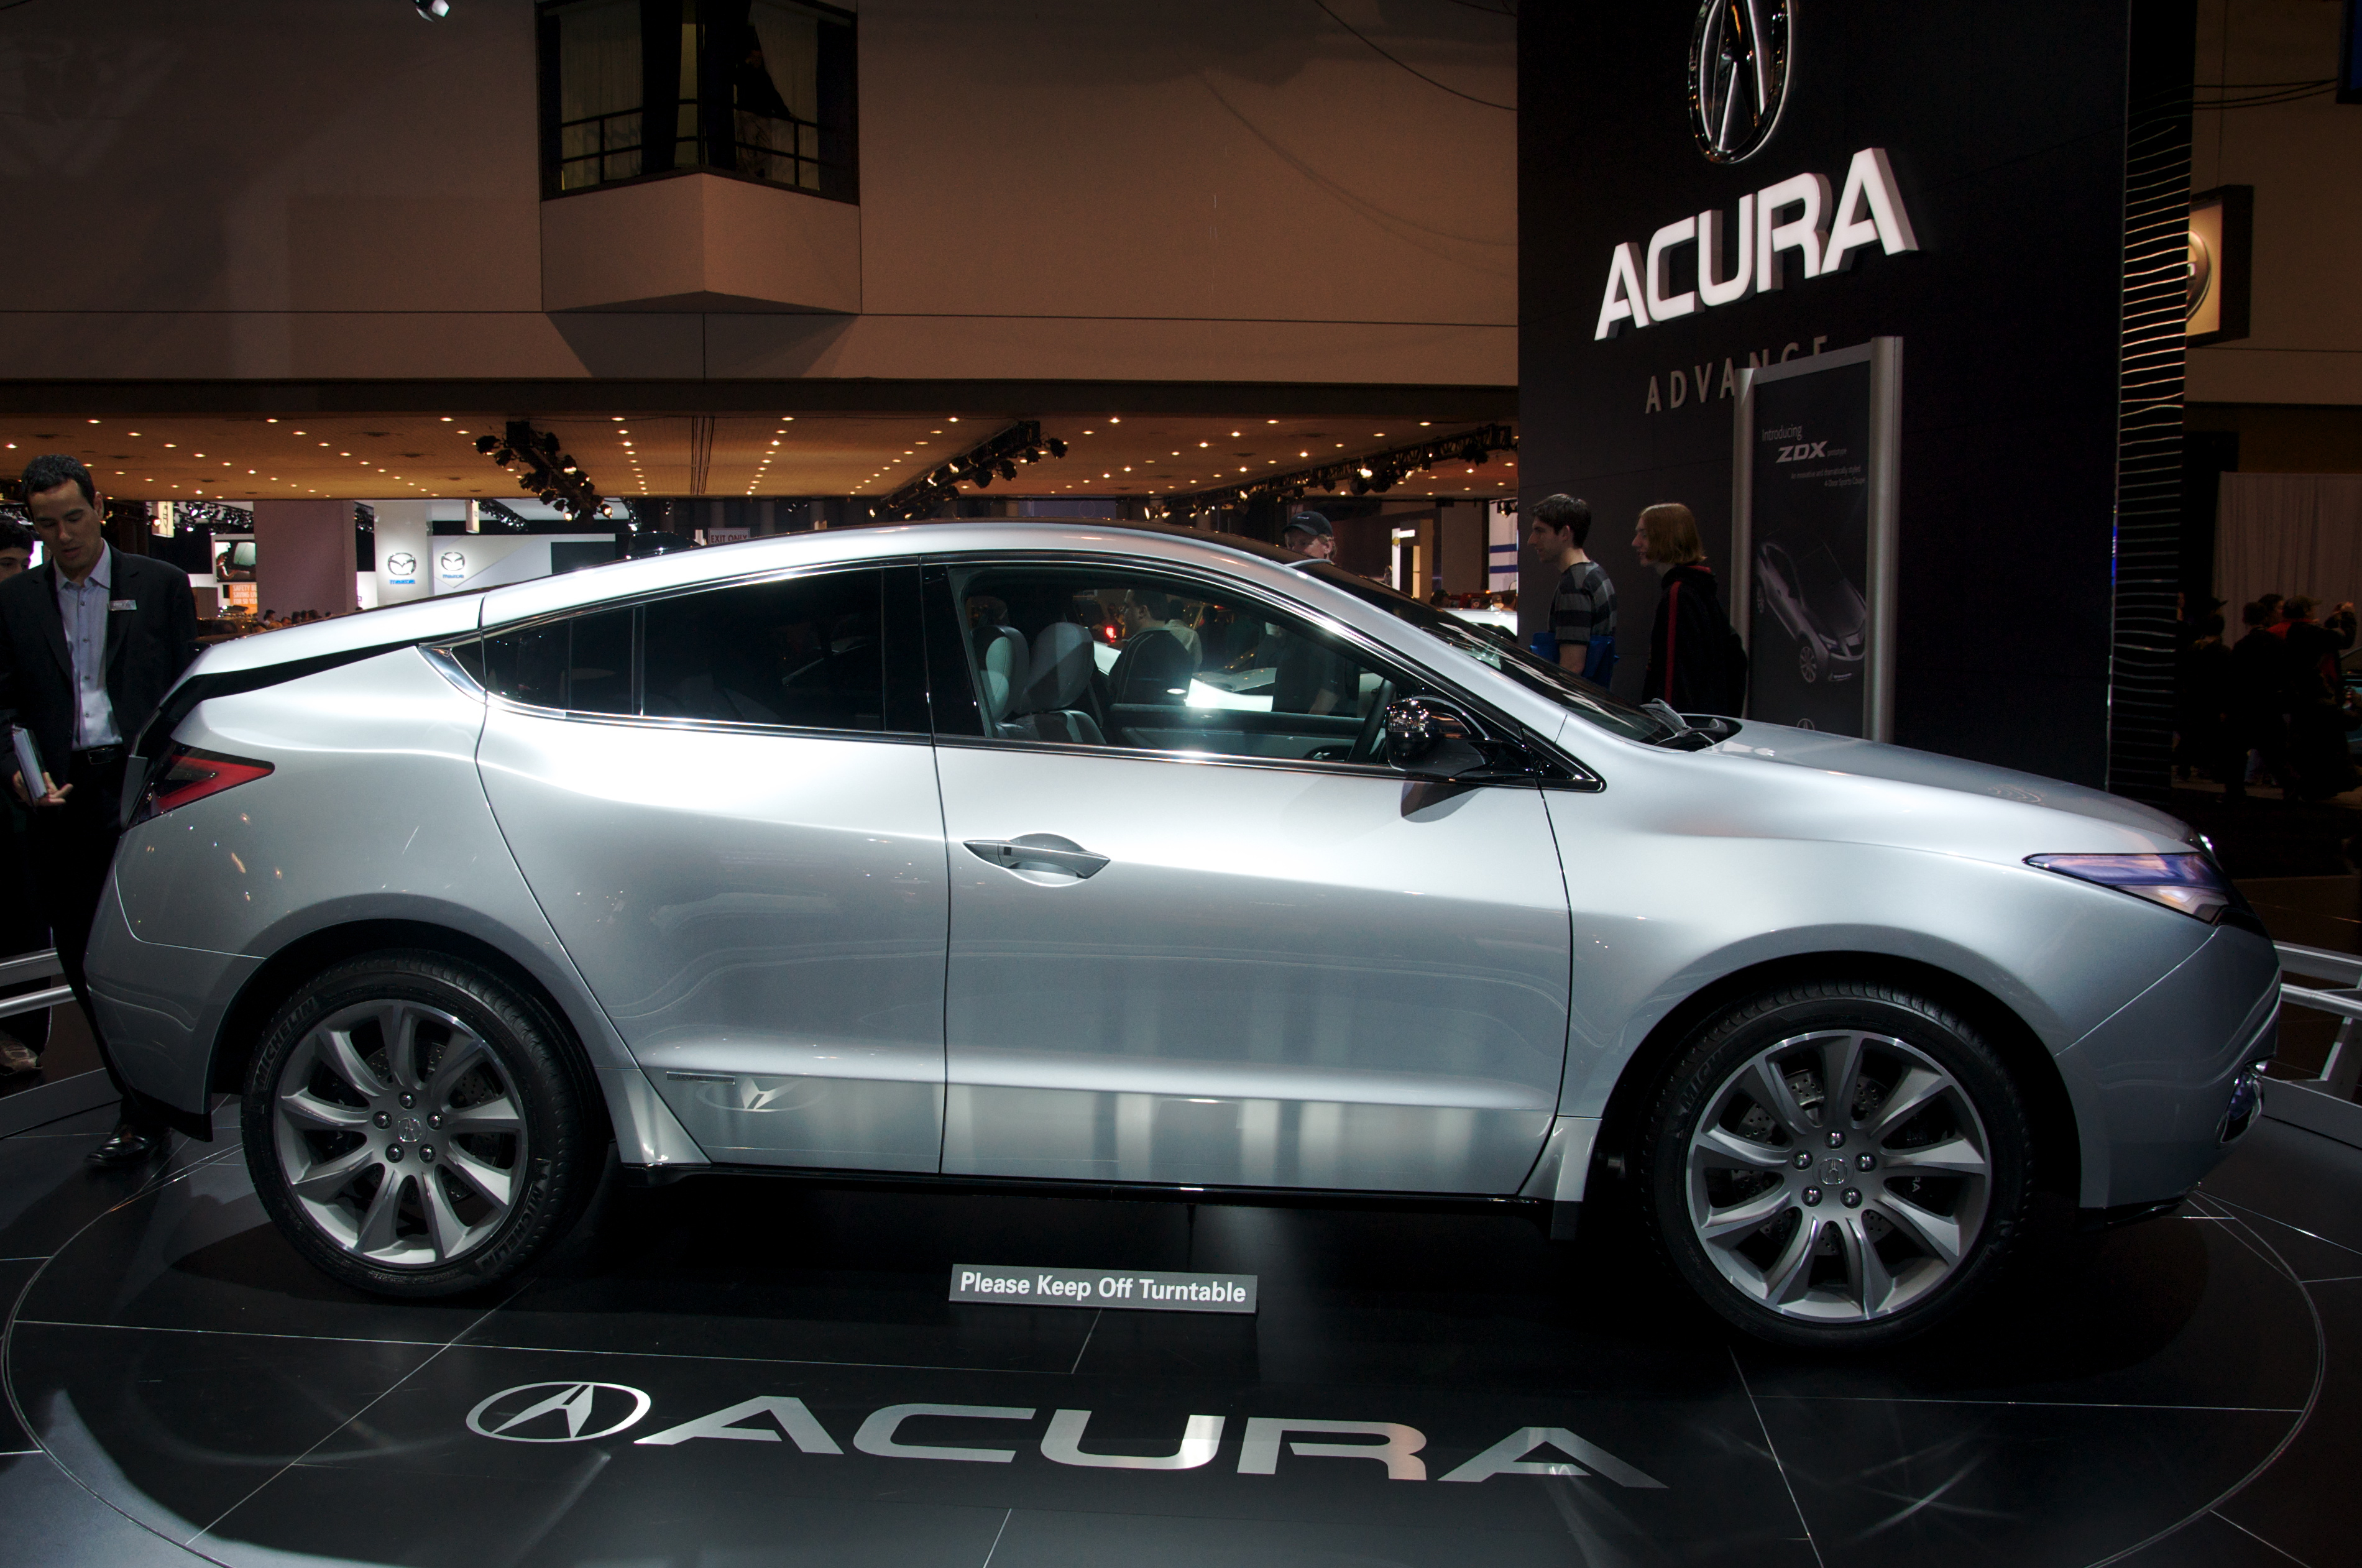 Acura Zdx Used Cars For Sale By Owner